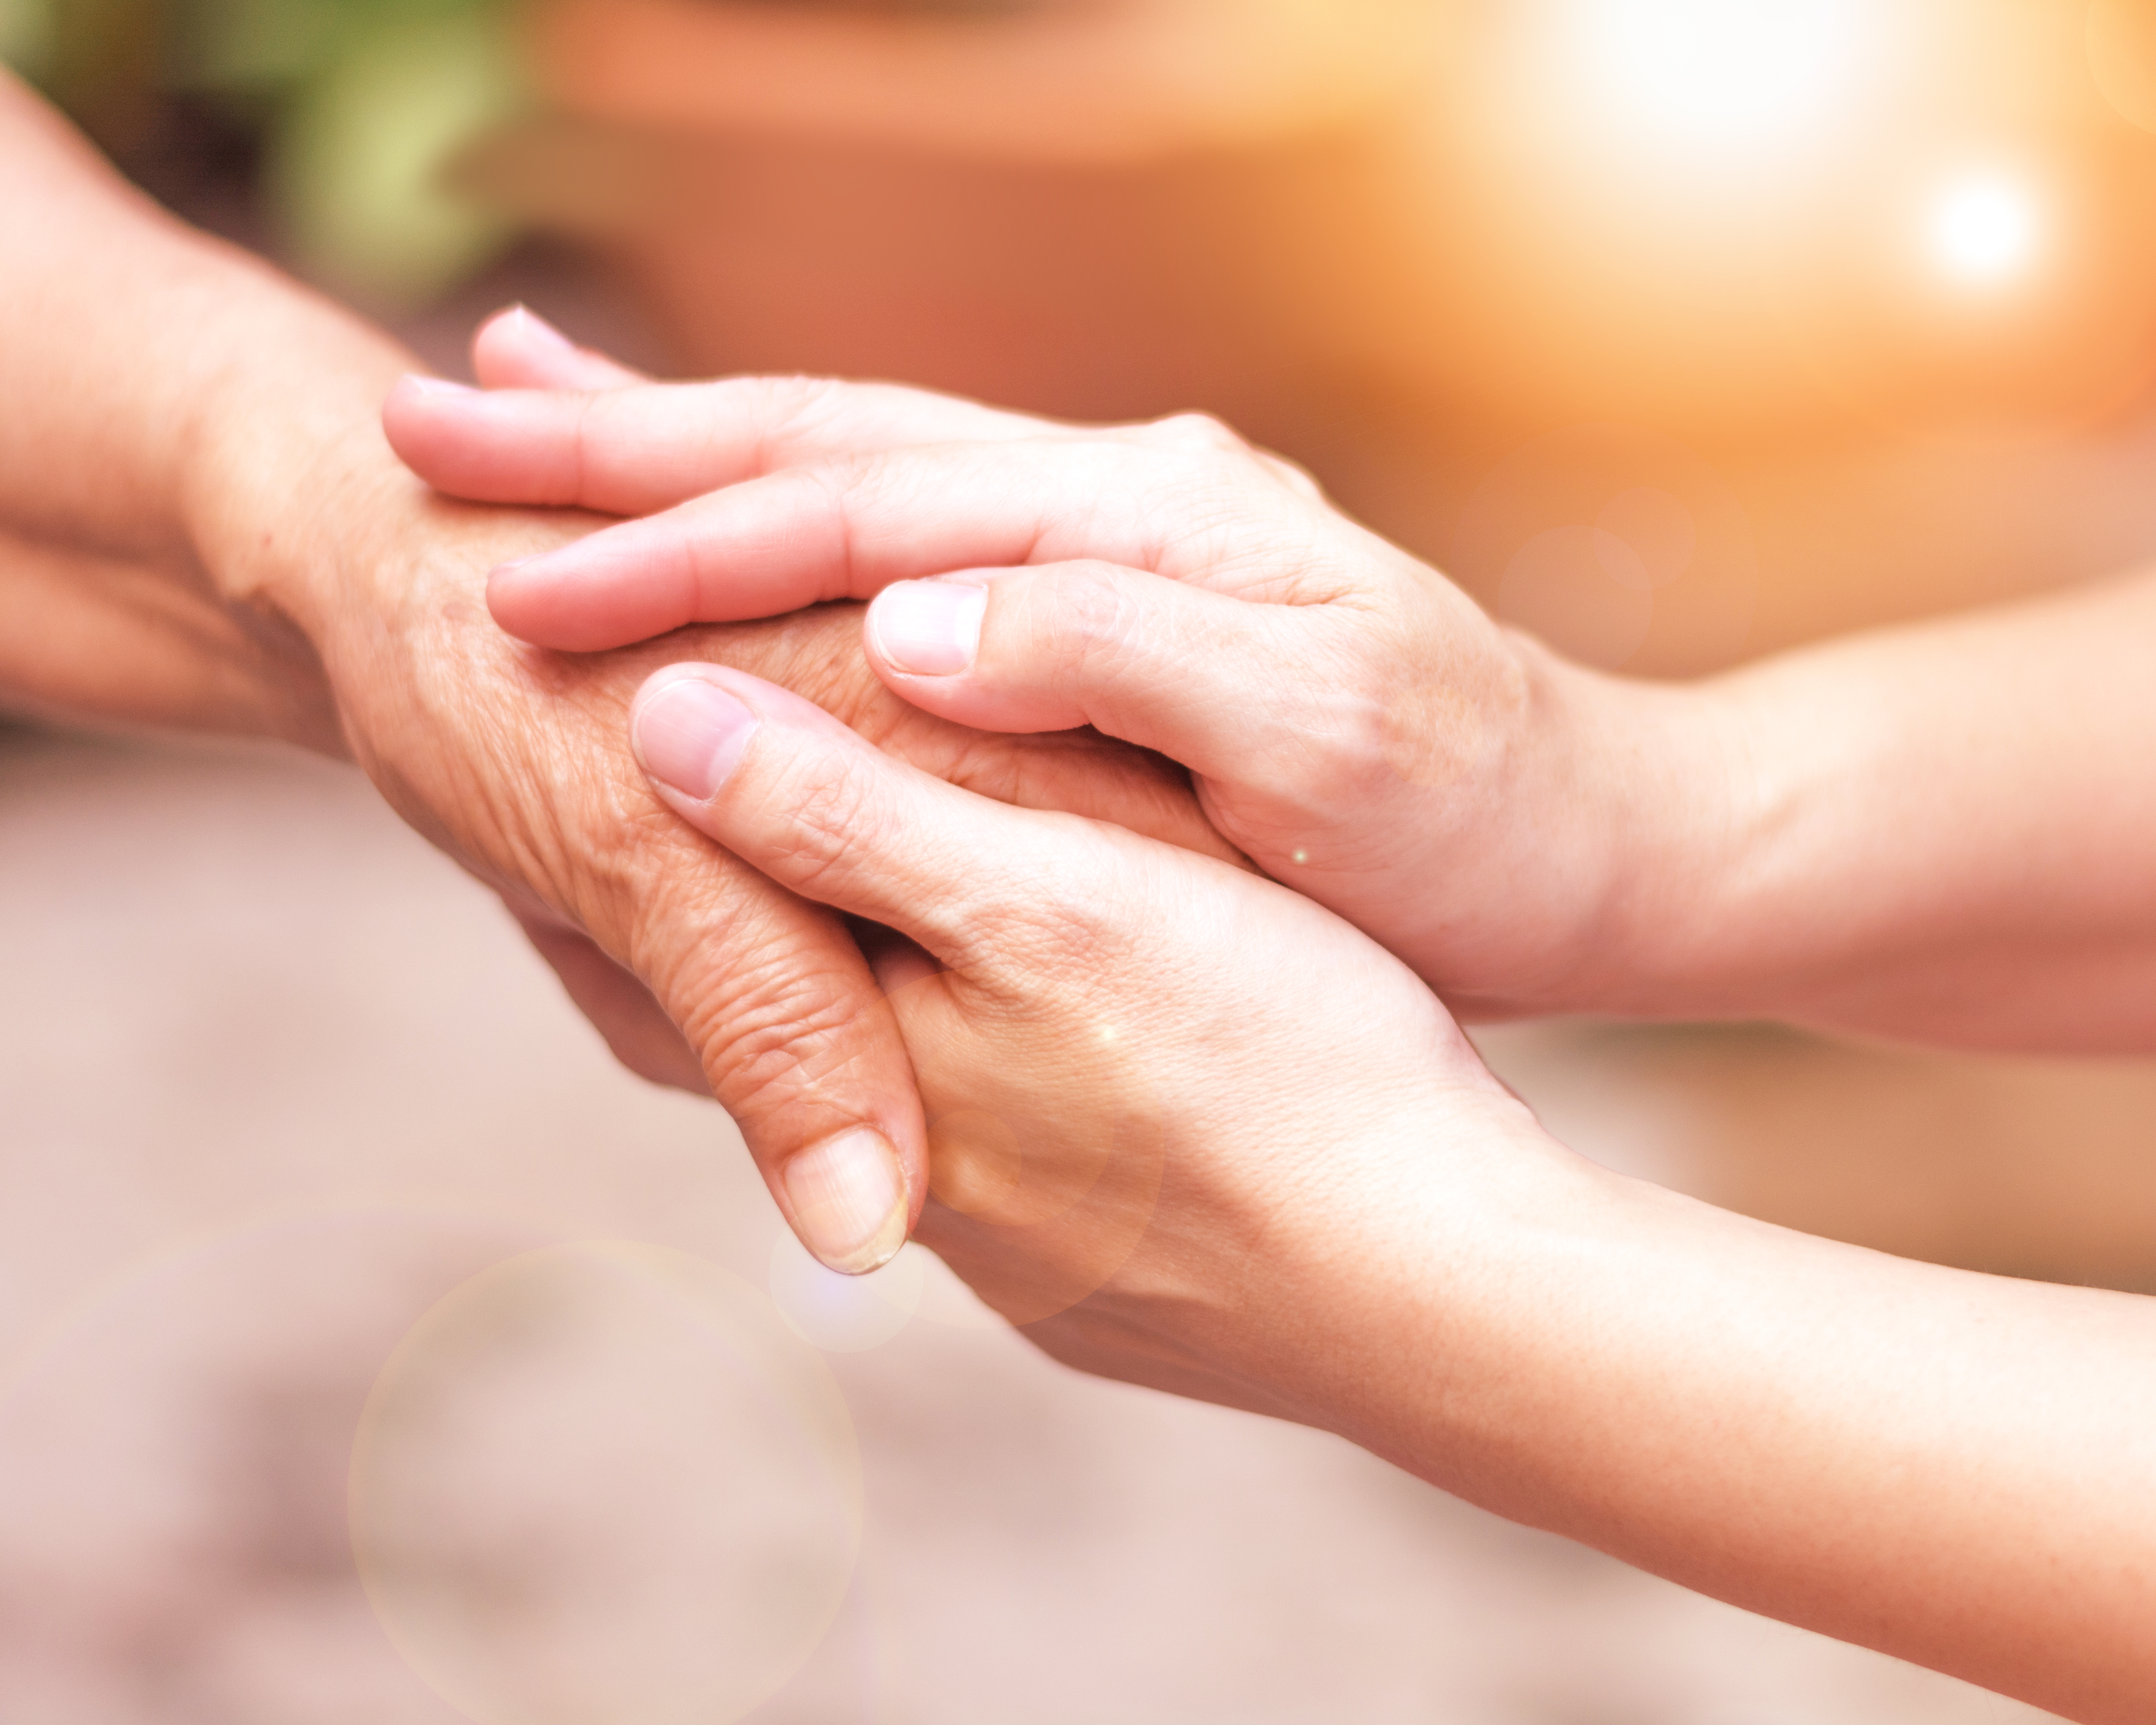 The Top 10 Tips on Caring for Caregivers During COVID-19